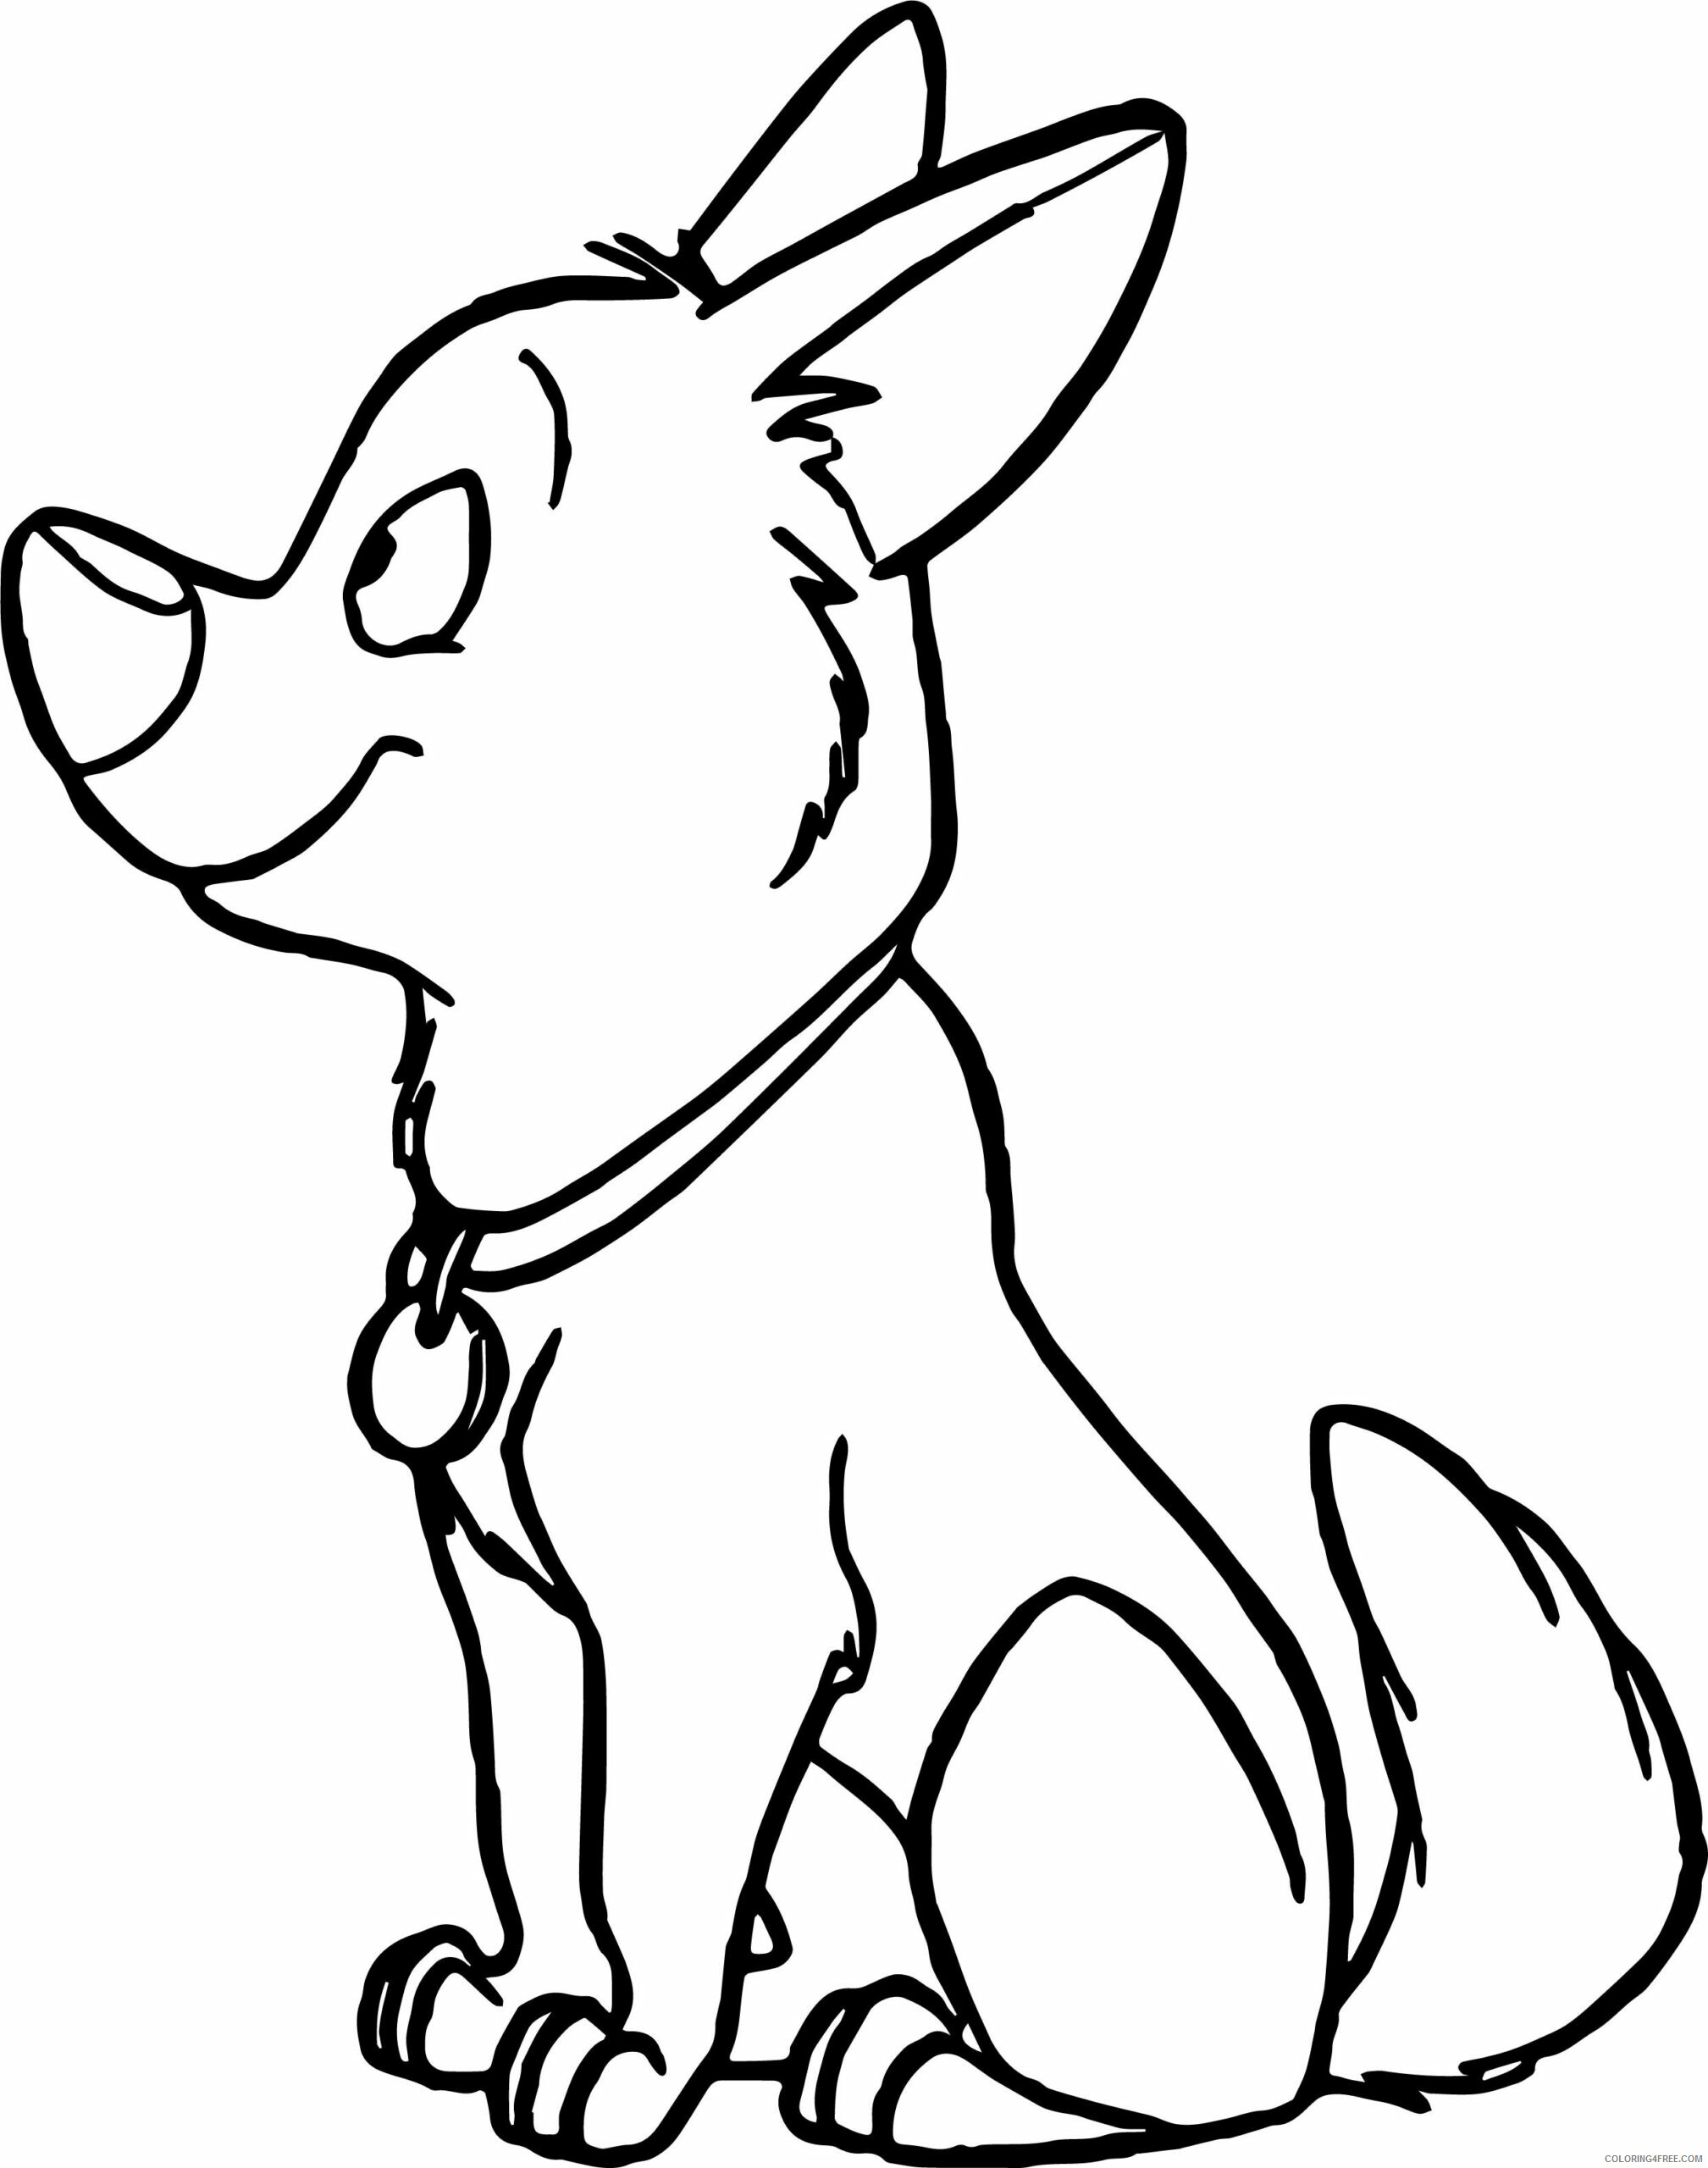 Bolt Coloring Pages TV Film Cute Bolt Movie Printable 2020 01244 Coloring4free